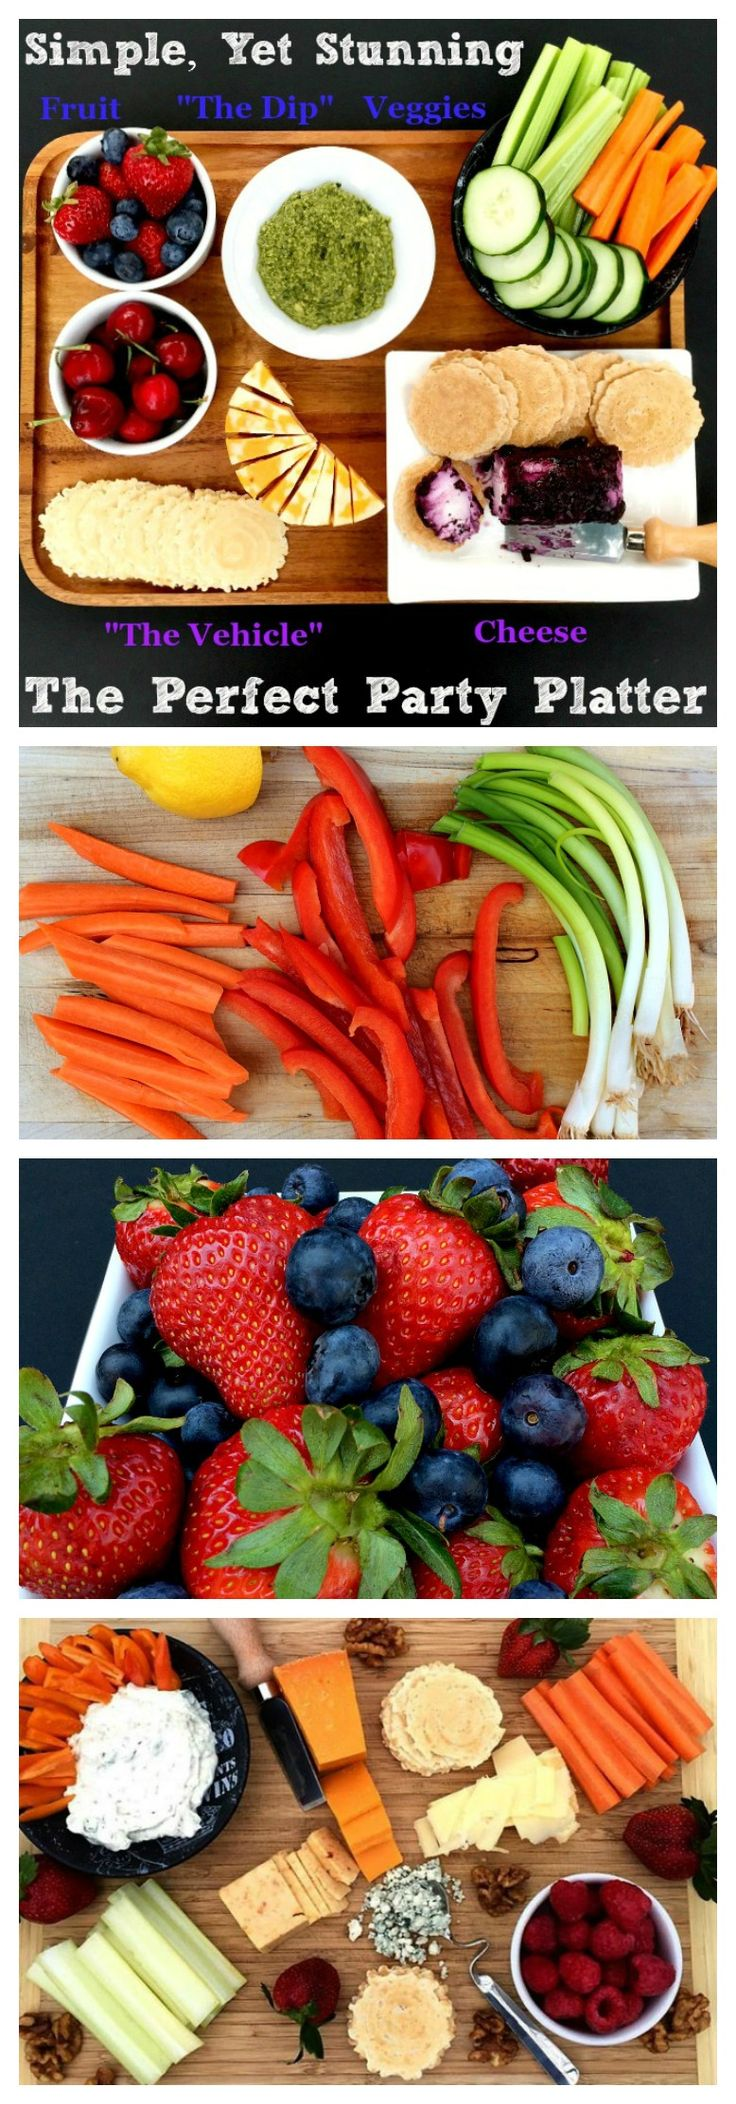 Fruit, cheese and veggies galore: how to create a simple, yet stunning snack platter for all your entertaining needs.